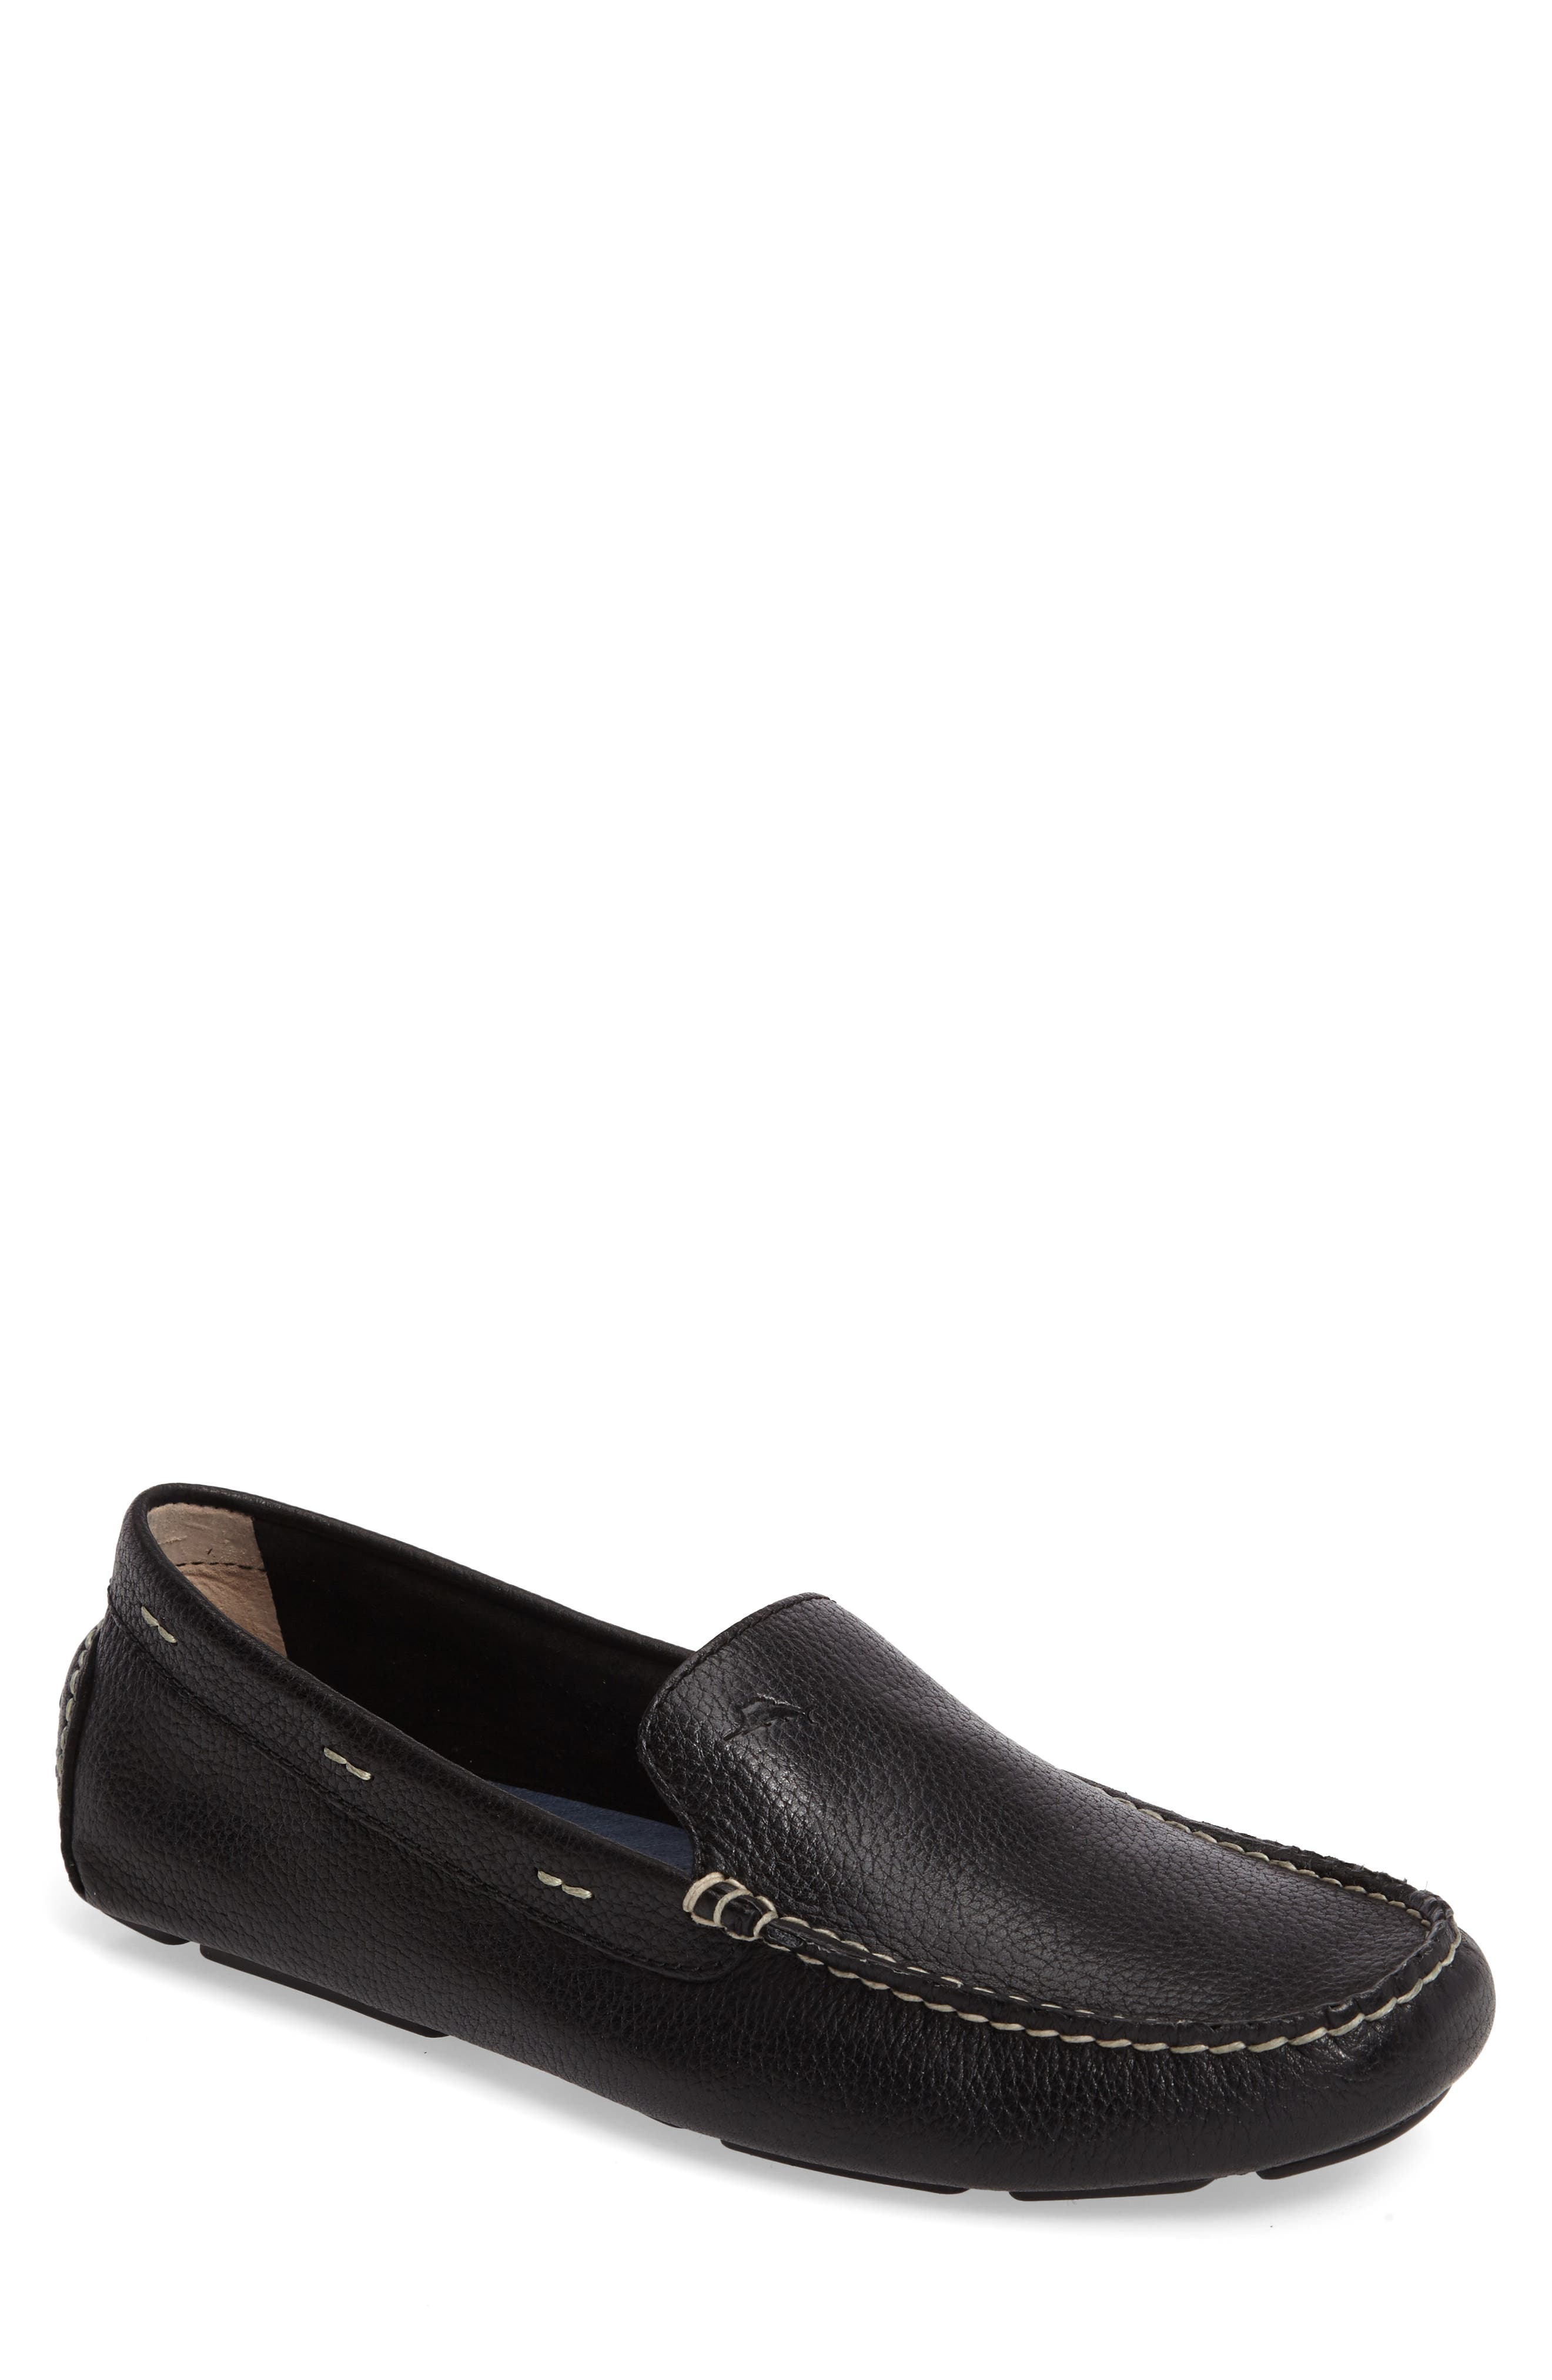 Pagota Driving Loafer,                         Main,                         color, BLACK LEATHER